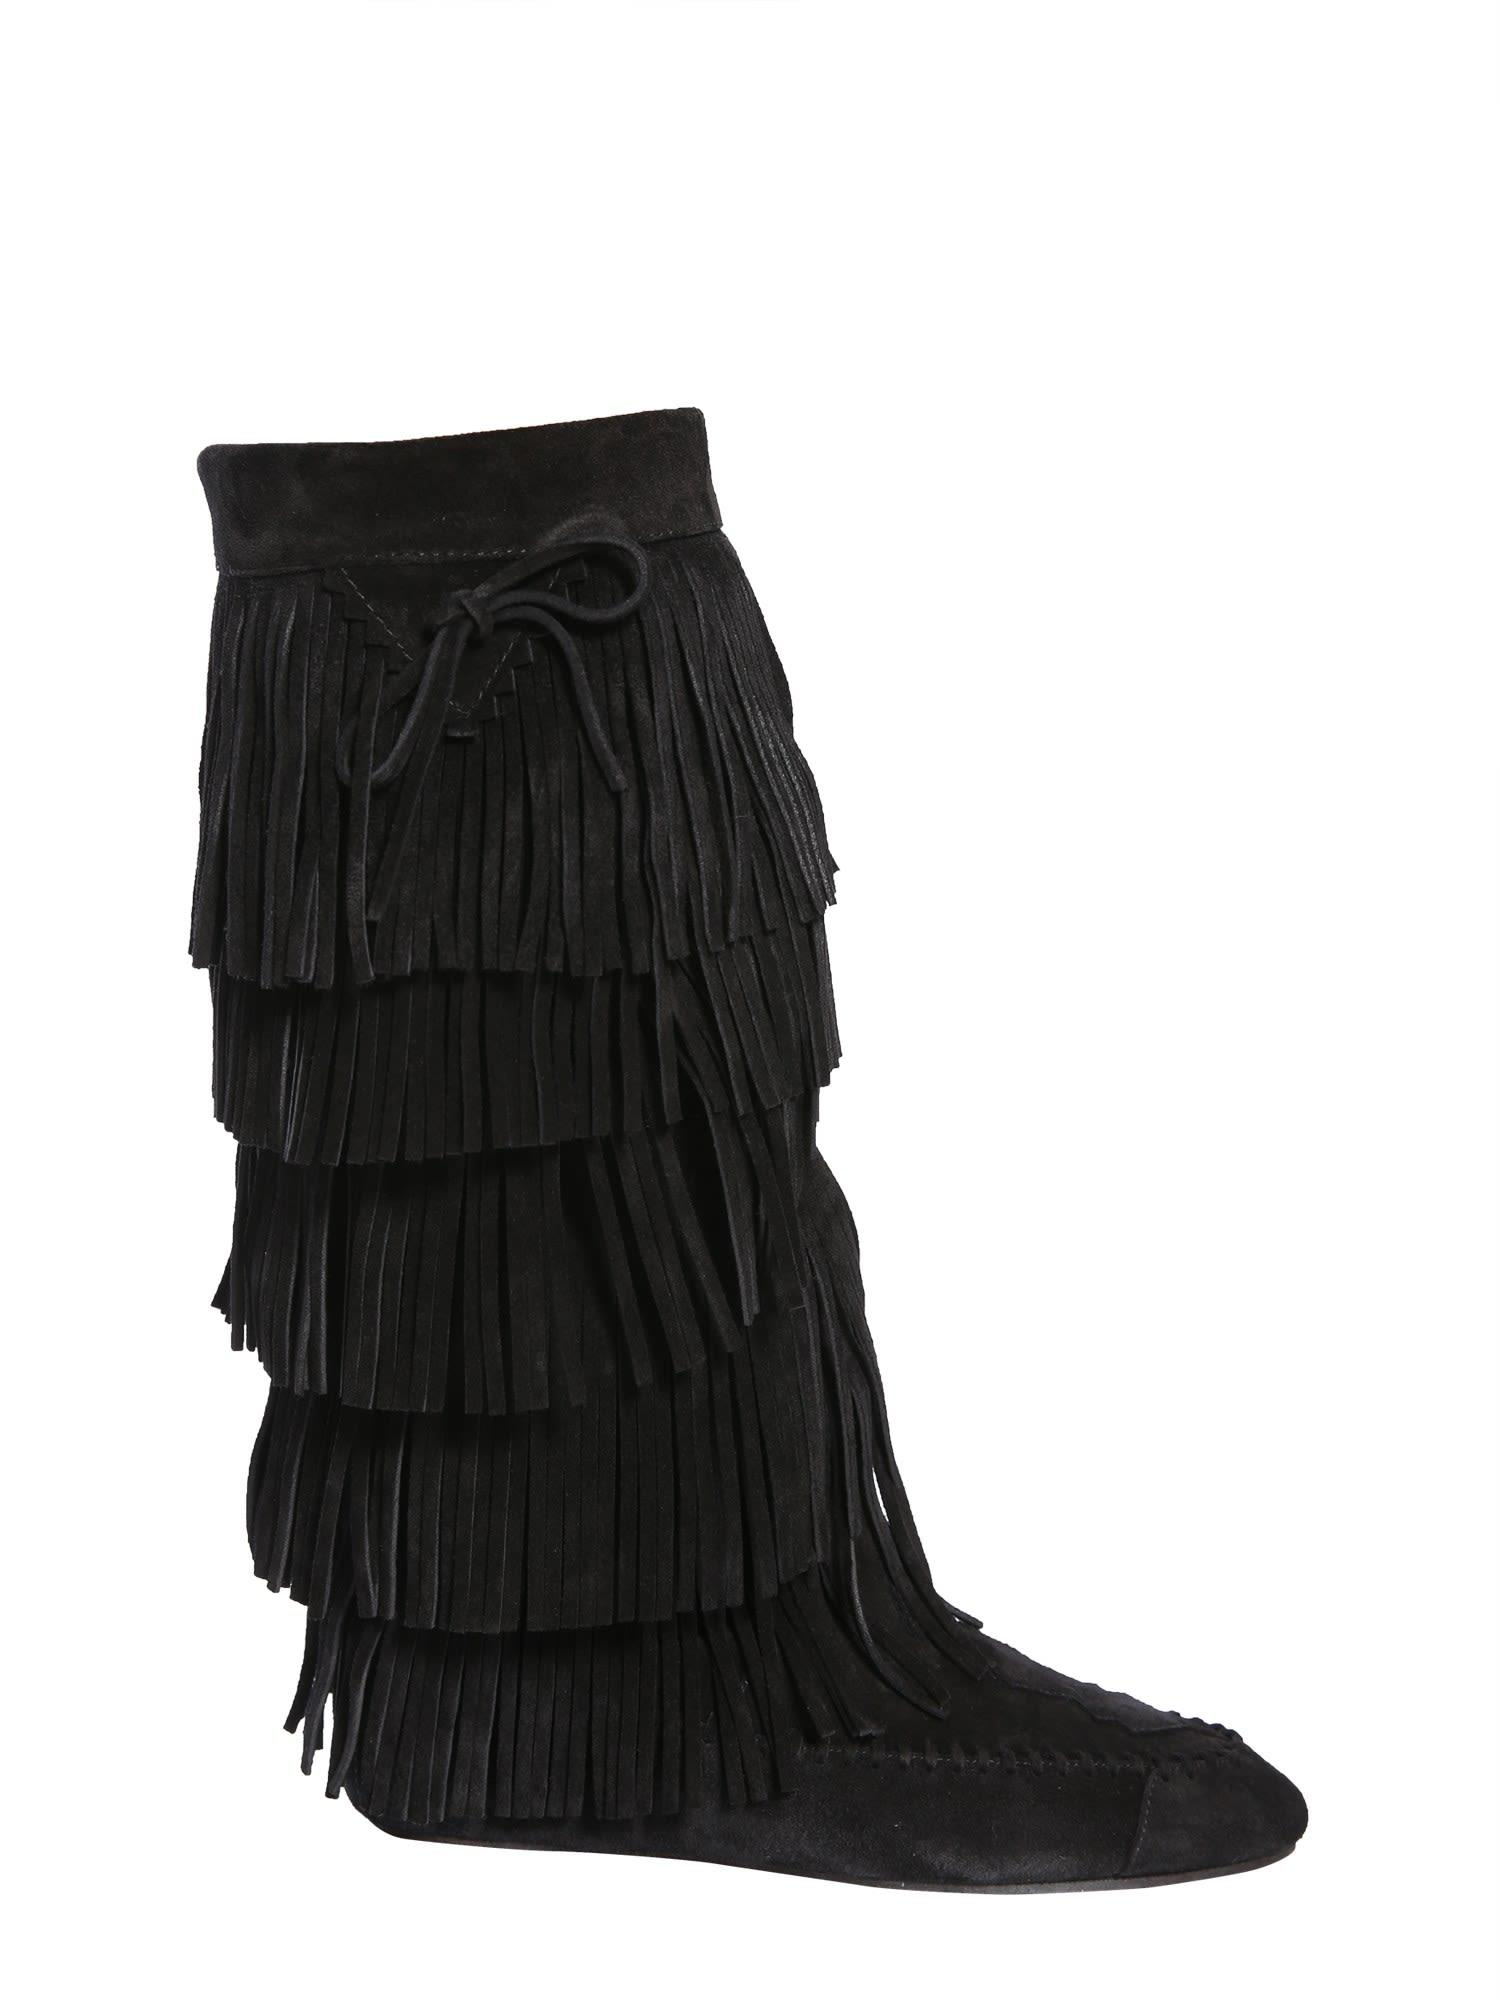 0ded4941a4b3 Saint Laurent Fringed Boots In Nero